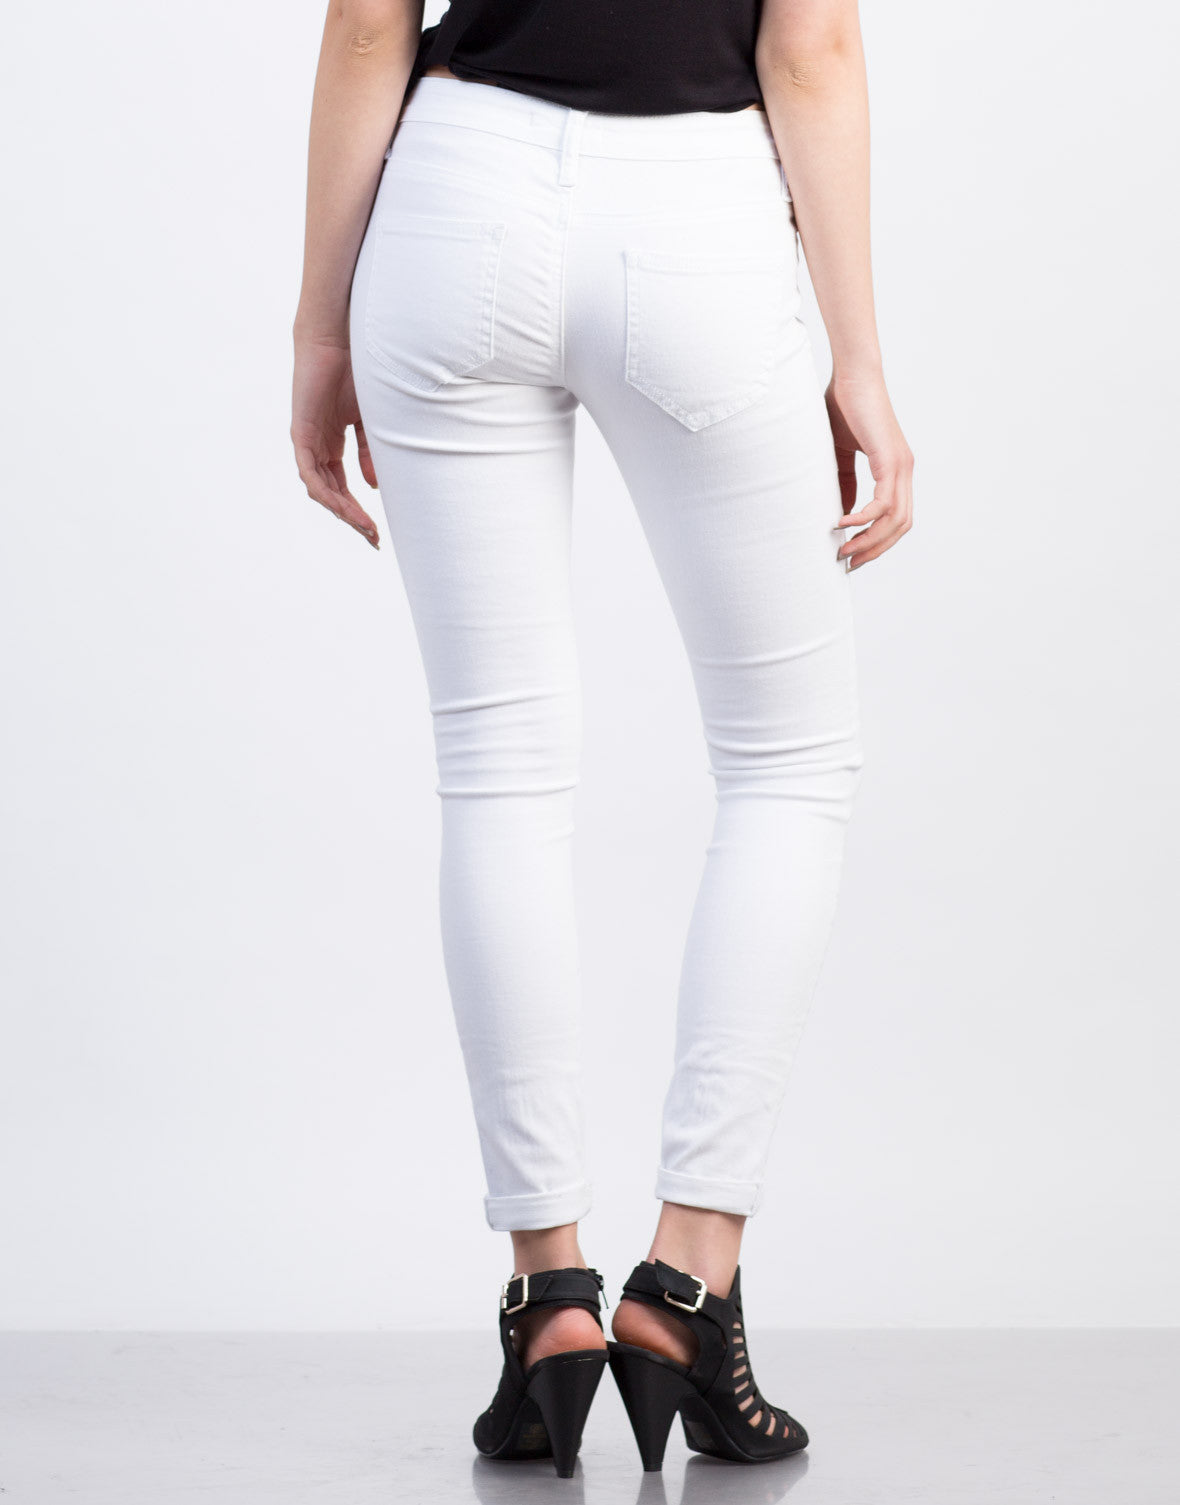 Free shipping and returns on Women's White Wash Skinny Jeans at rutor-org.ga